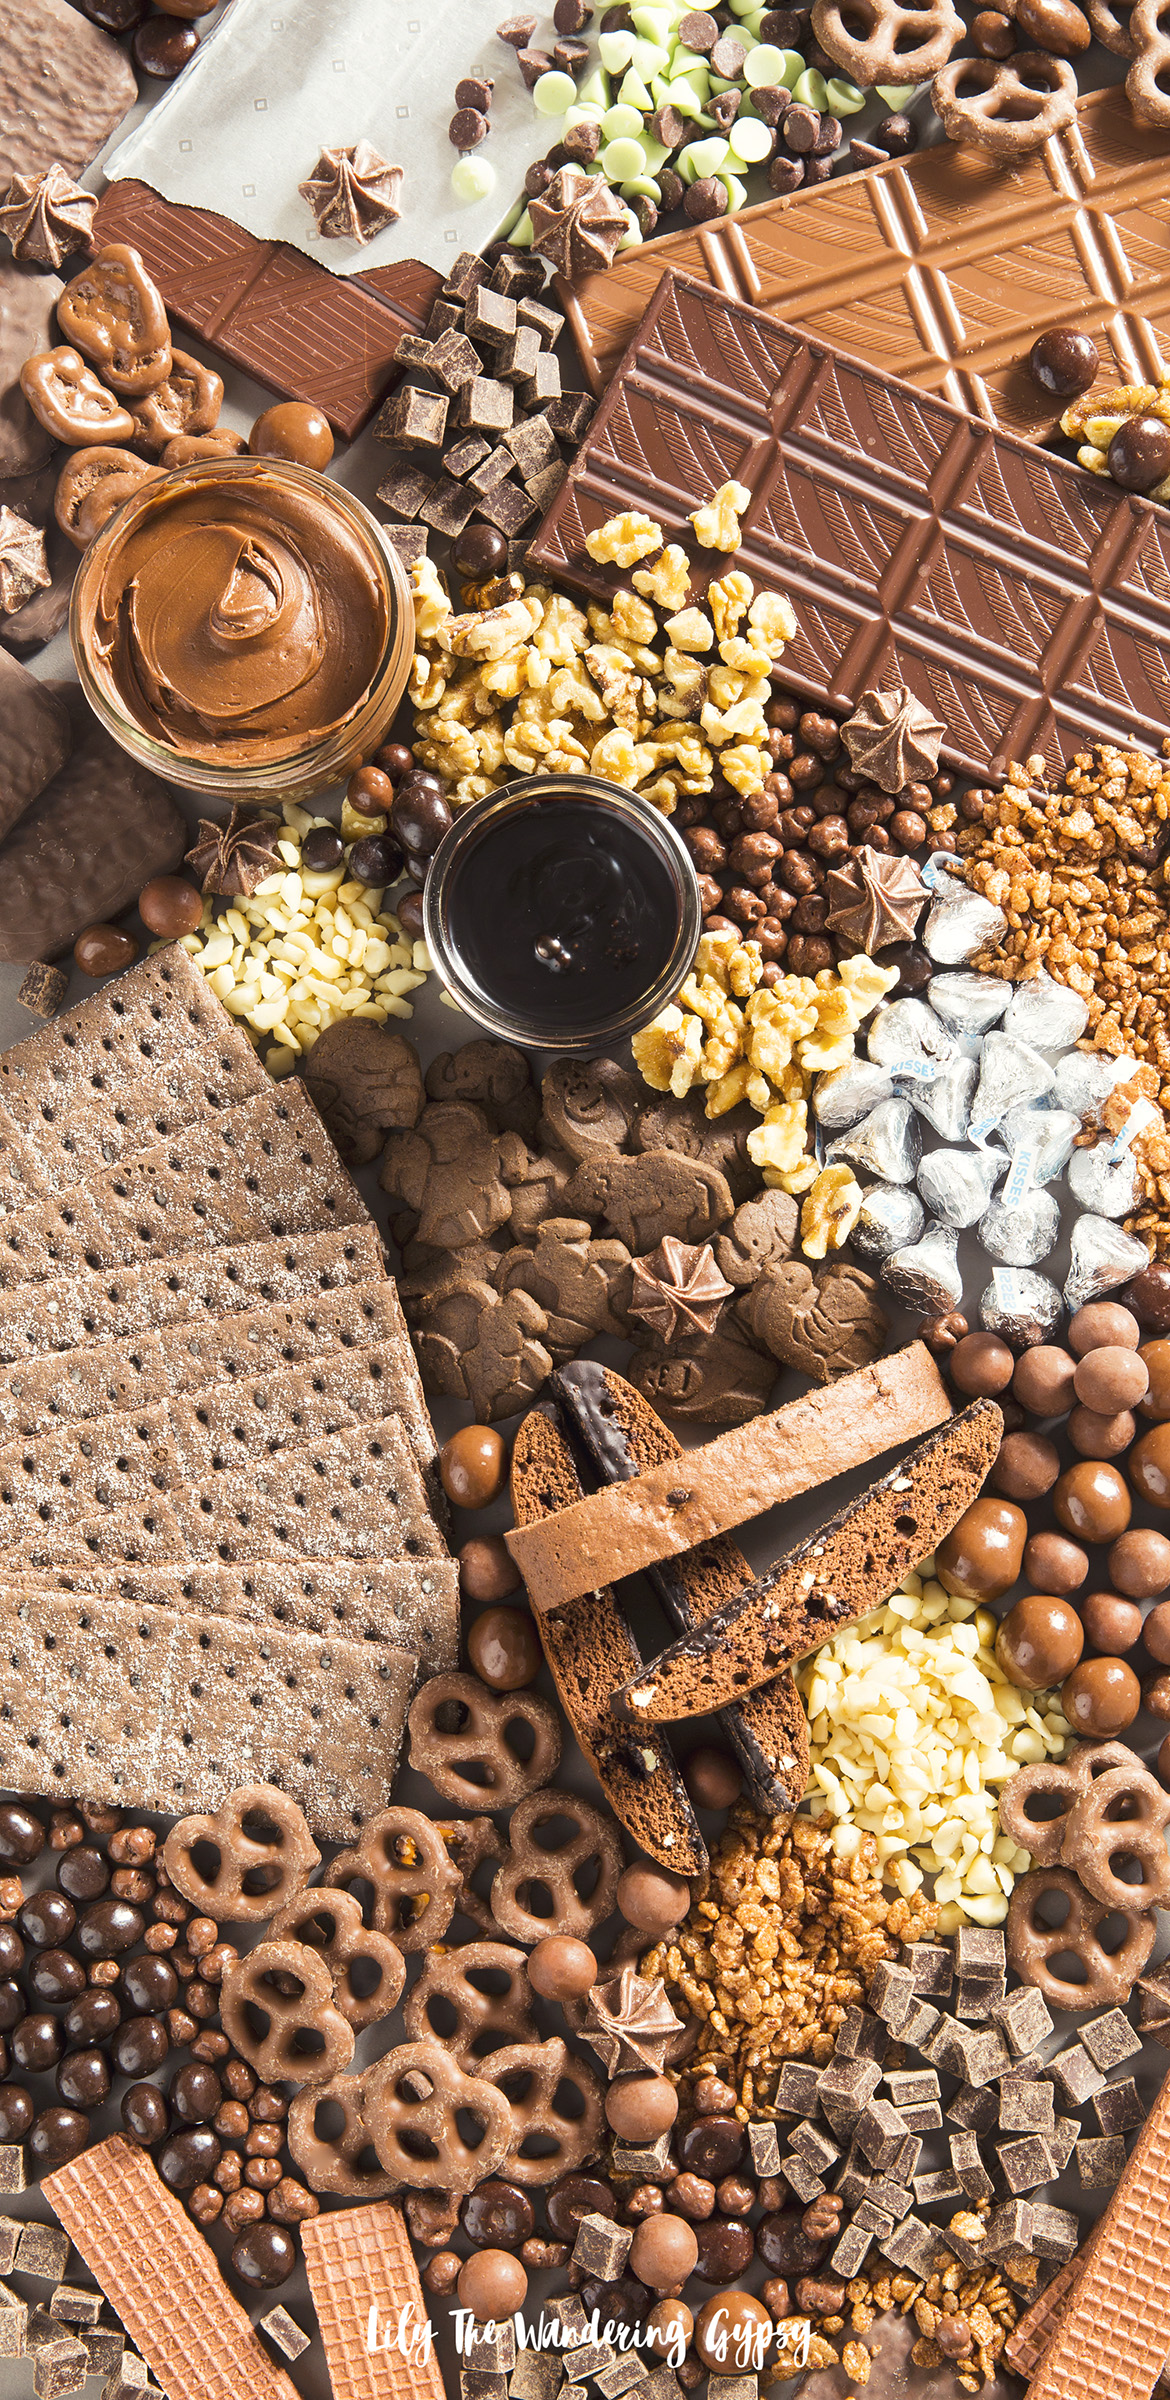 The Ultimate Chocolate Charcuterie Board